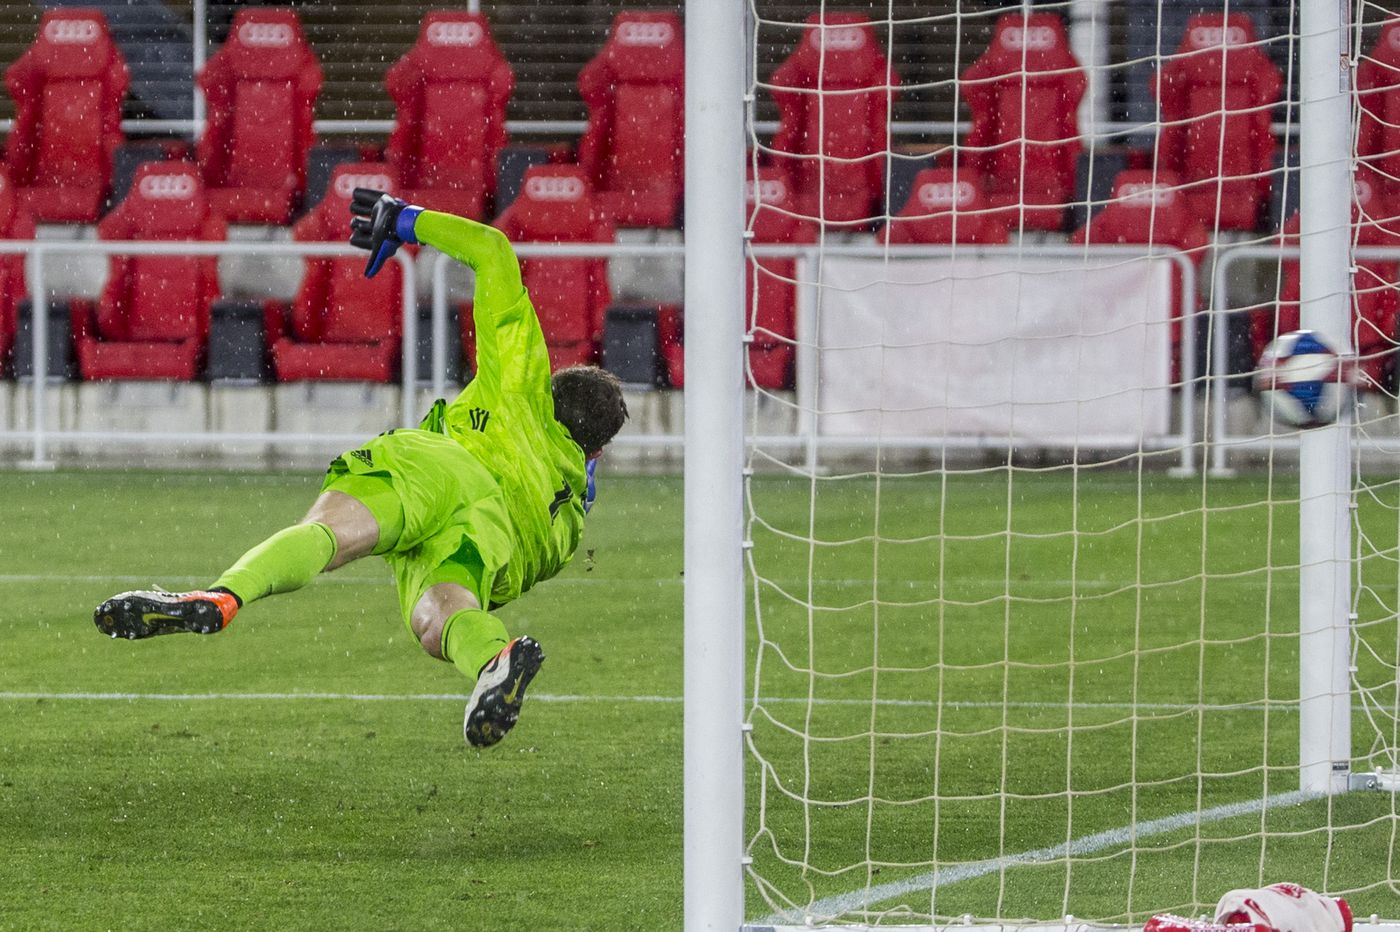 This time, the Union losing in the U.S. Open Cup isn't as big of a deal